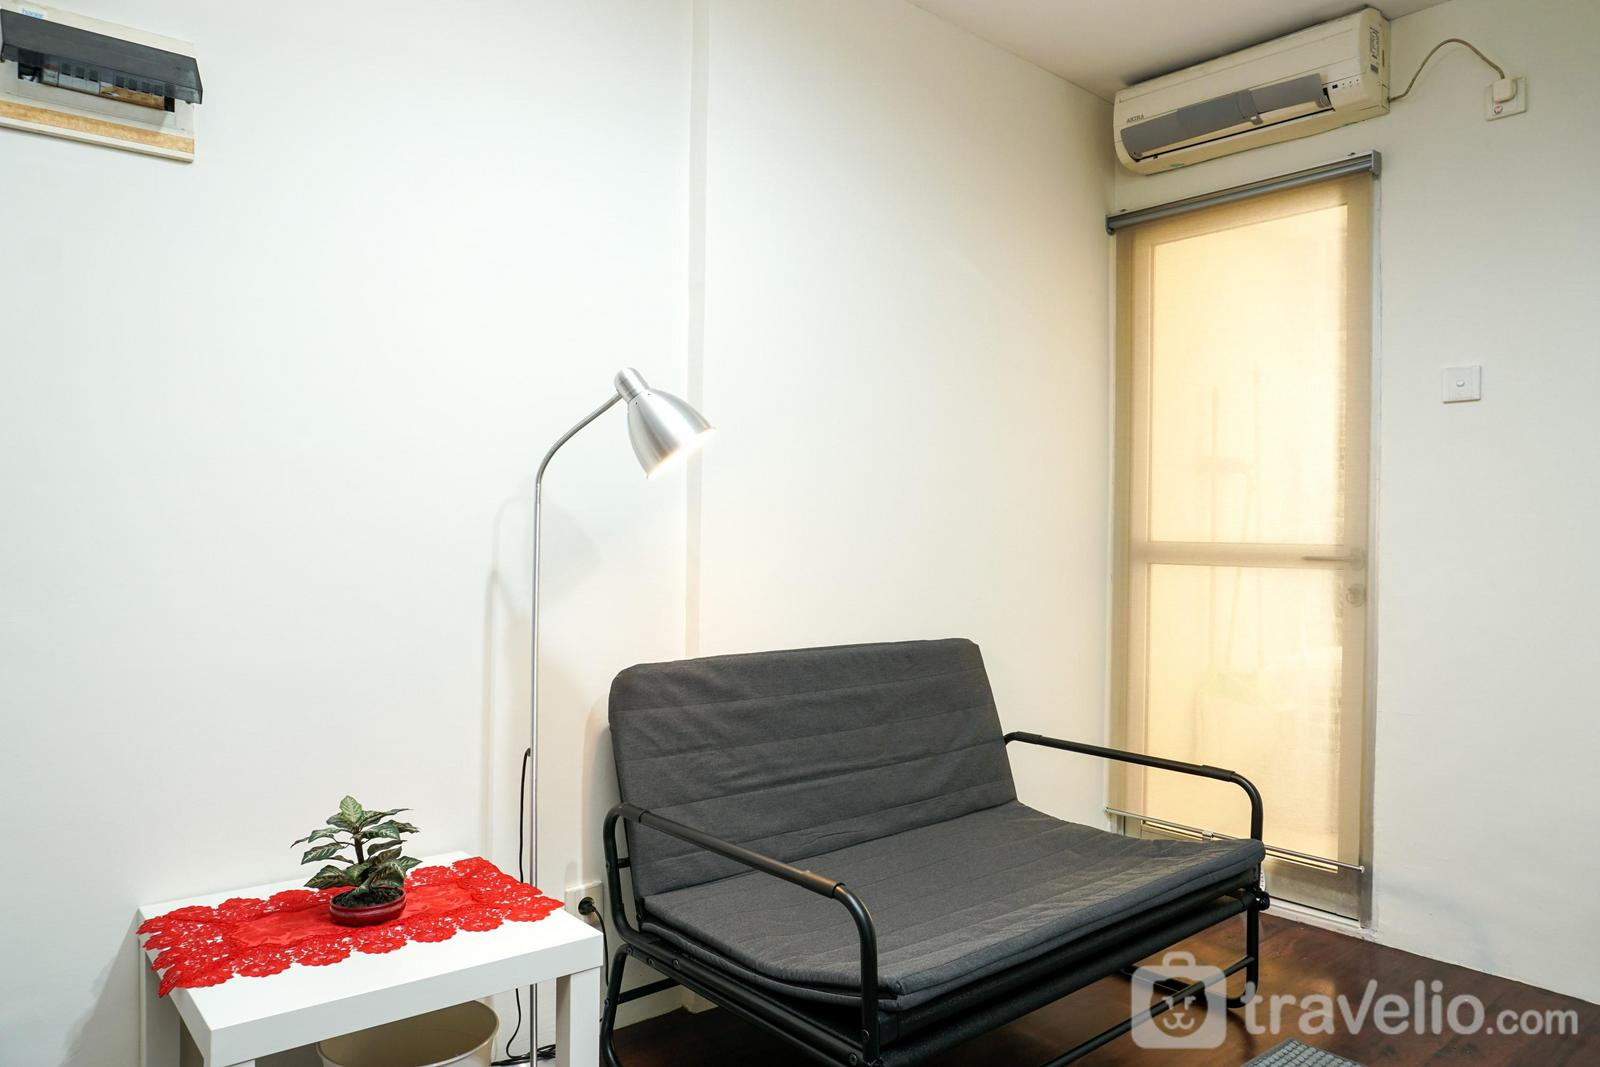 Gajah Mada Mediterania - Comfy 3BR Apartment at Mediterania Gajah Mada By Travelio